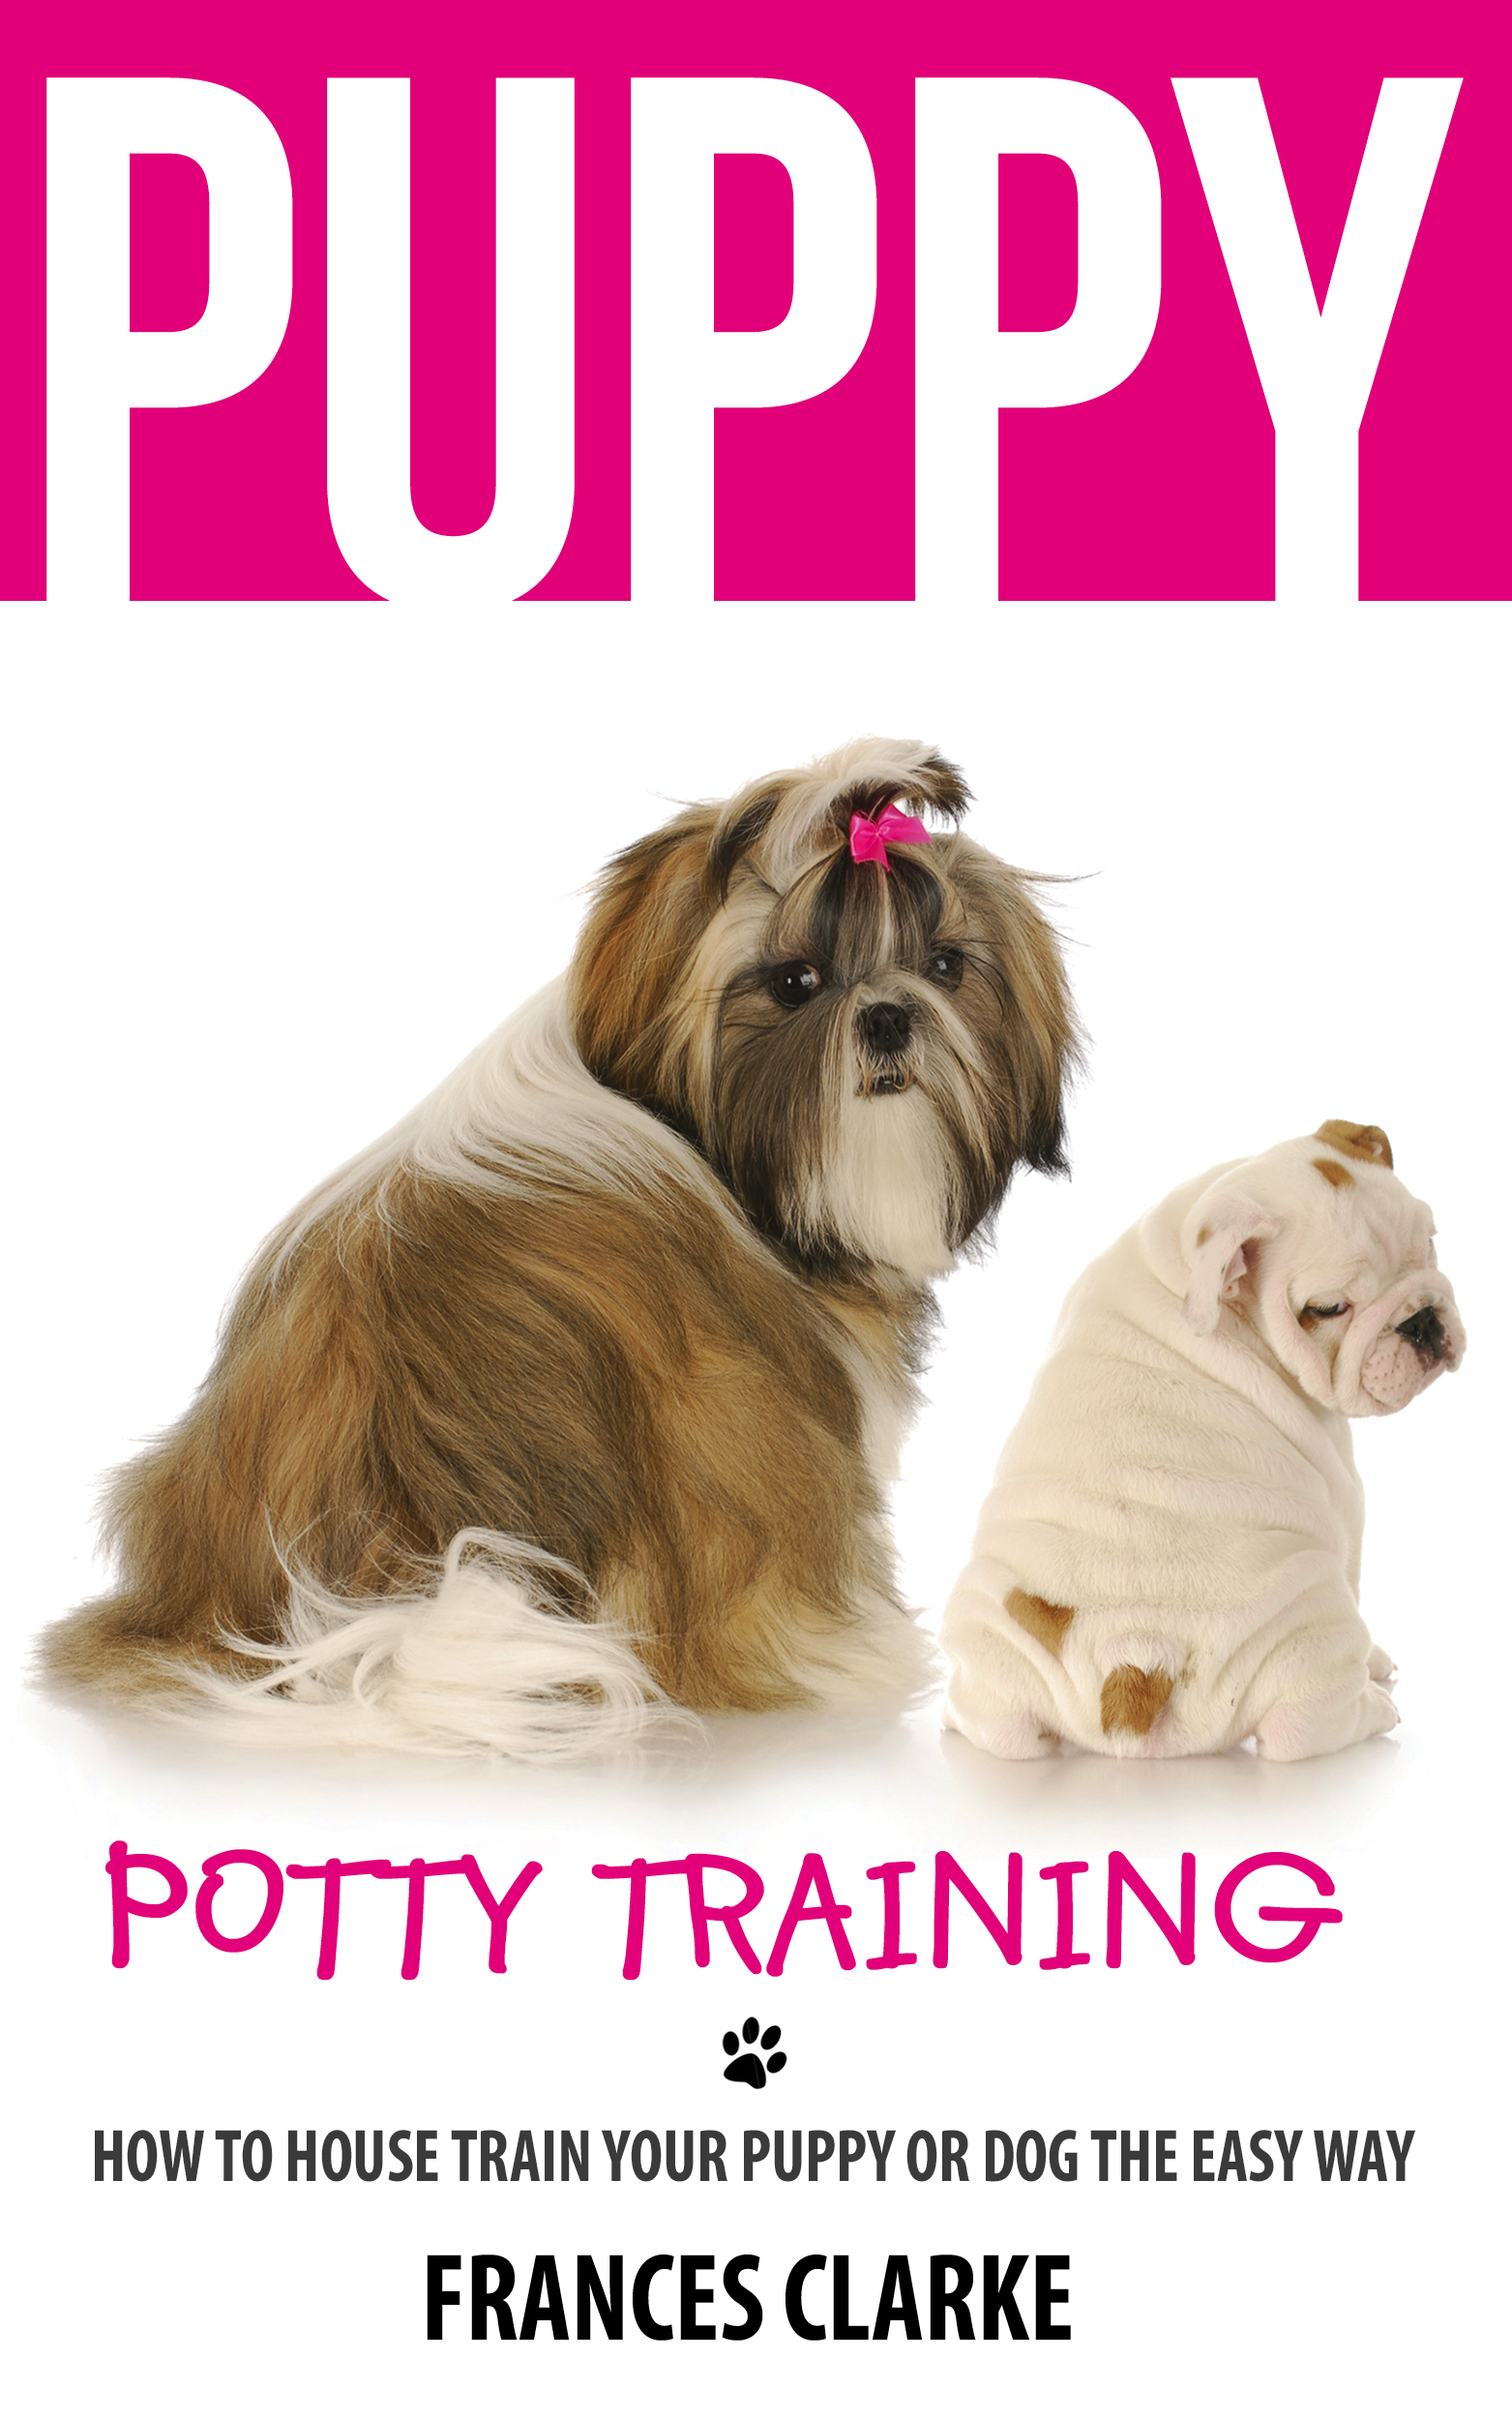 Process essay how to potty train a dog